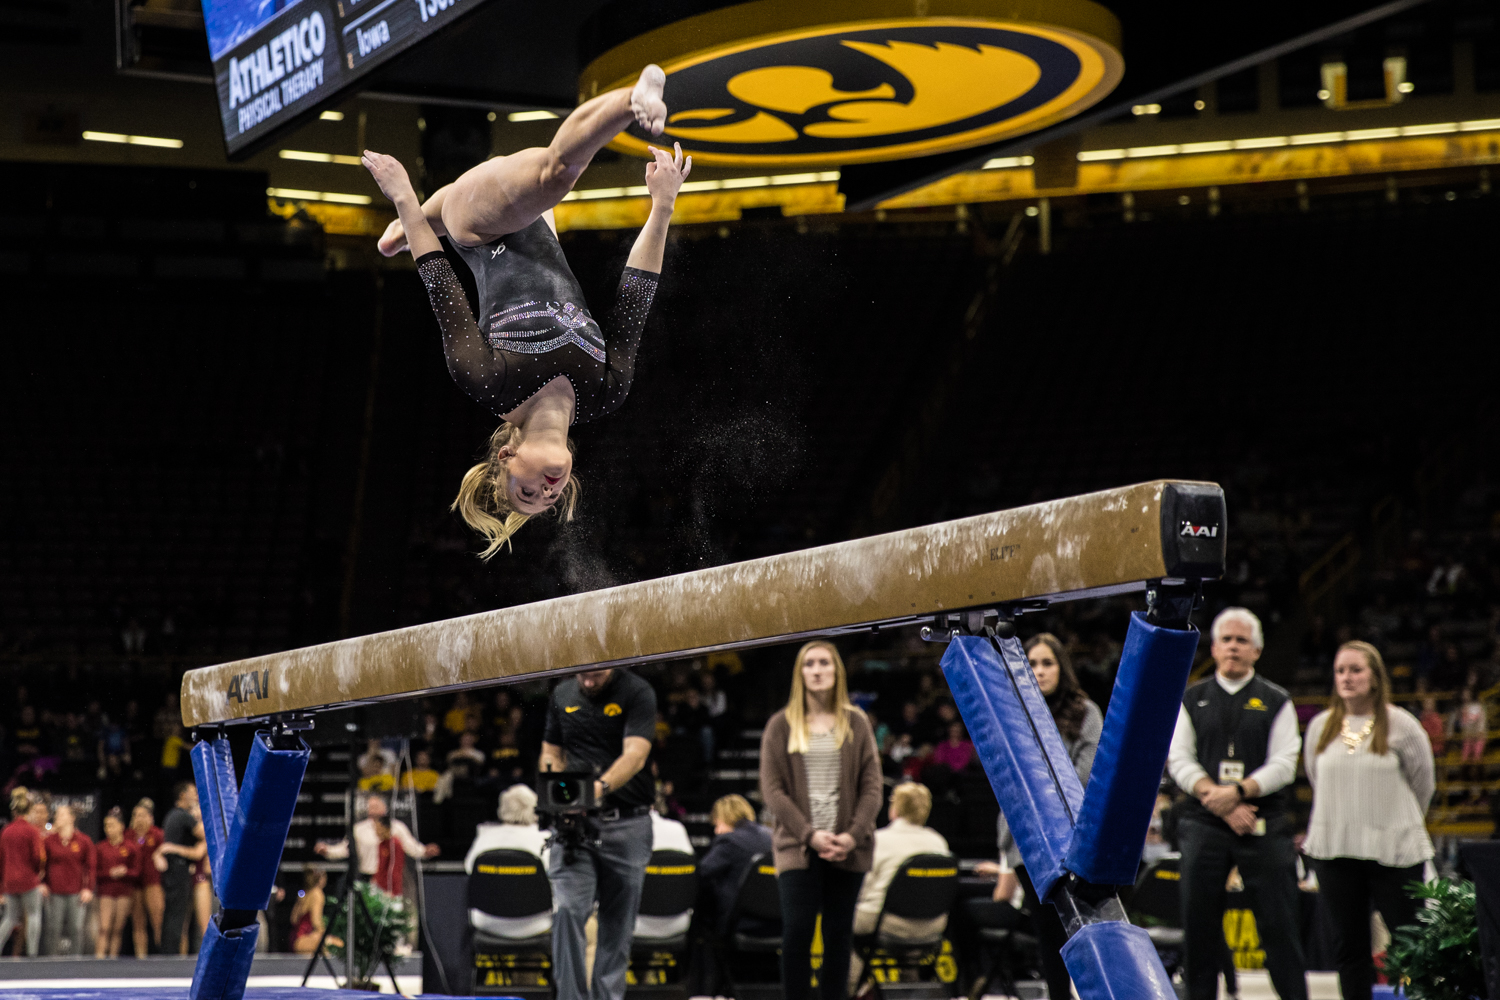 Iowa%27s+Charlotte+Sullivan+competes+on+beam+during+a+women%27s+gymnastics+meet+between+Iowa+and+Iowa+State+at+Carver-Hawkeye+Arena+on+Friday%2C+March+1%2C+2019.+Sullivan+scored+9.750+in+the+event.+The+Hawkeyes%2C+celebrating+senior+night%2C+fell+to+the+Cyclones%2C+196.275-196.250.